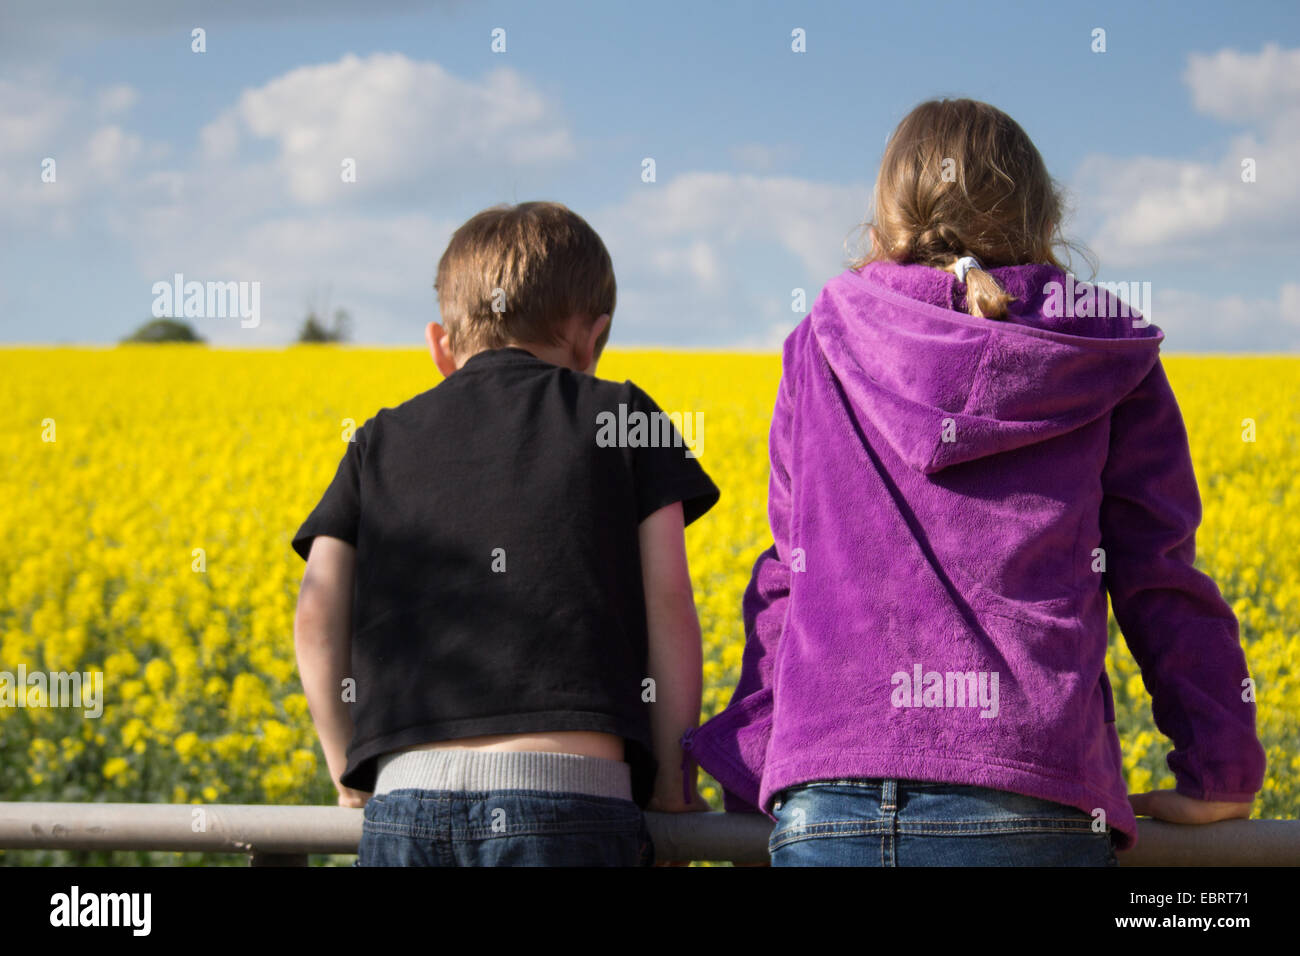 A boy and girl lean over a farm gate, looking across a rapeseed oil field. - Stock Image